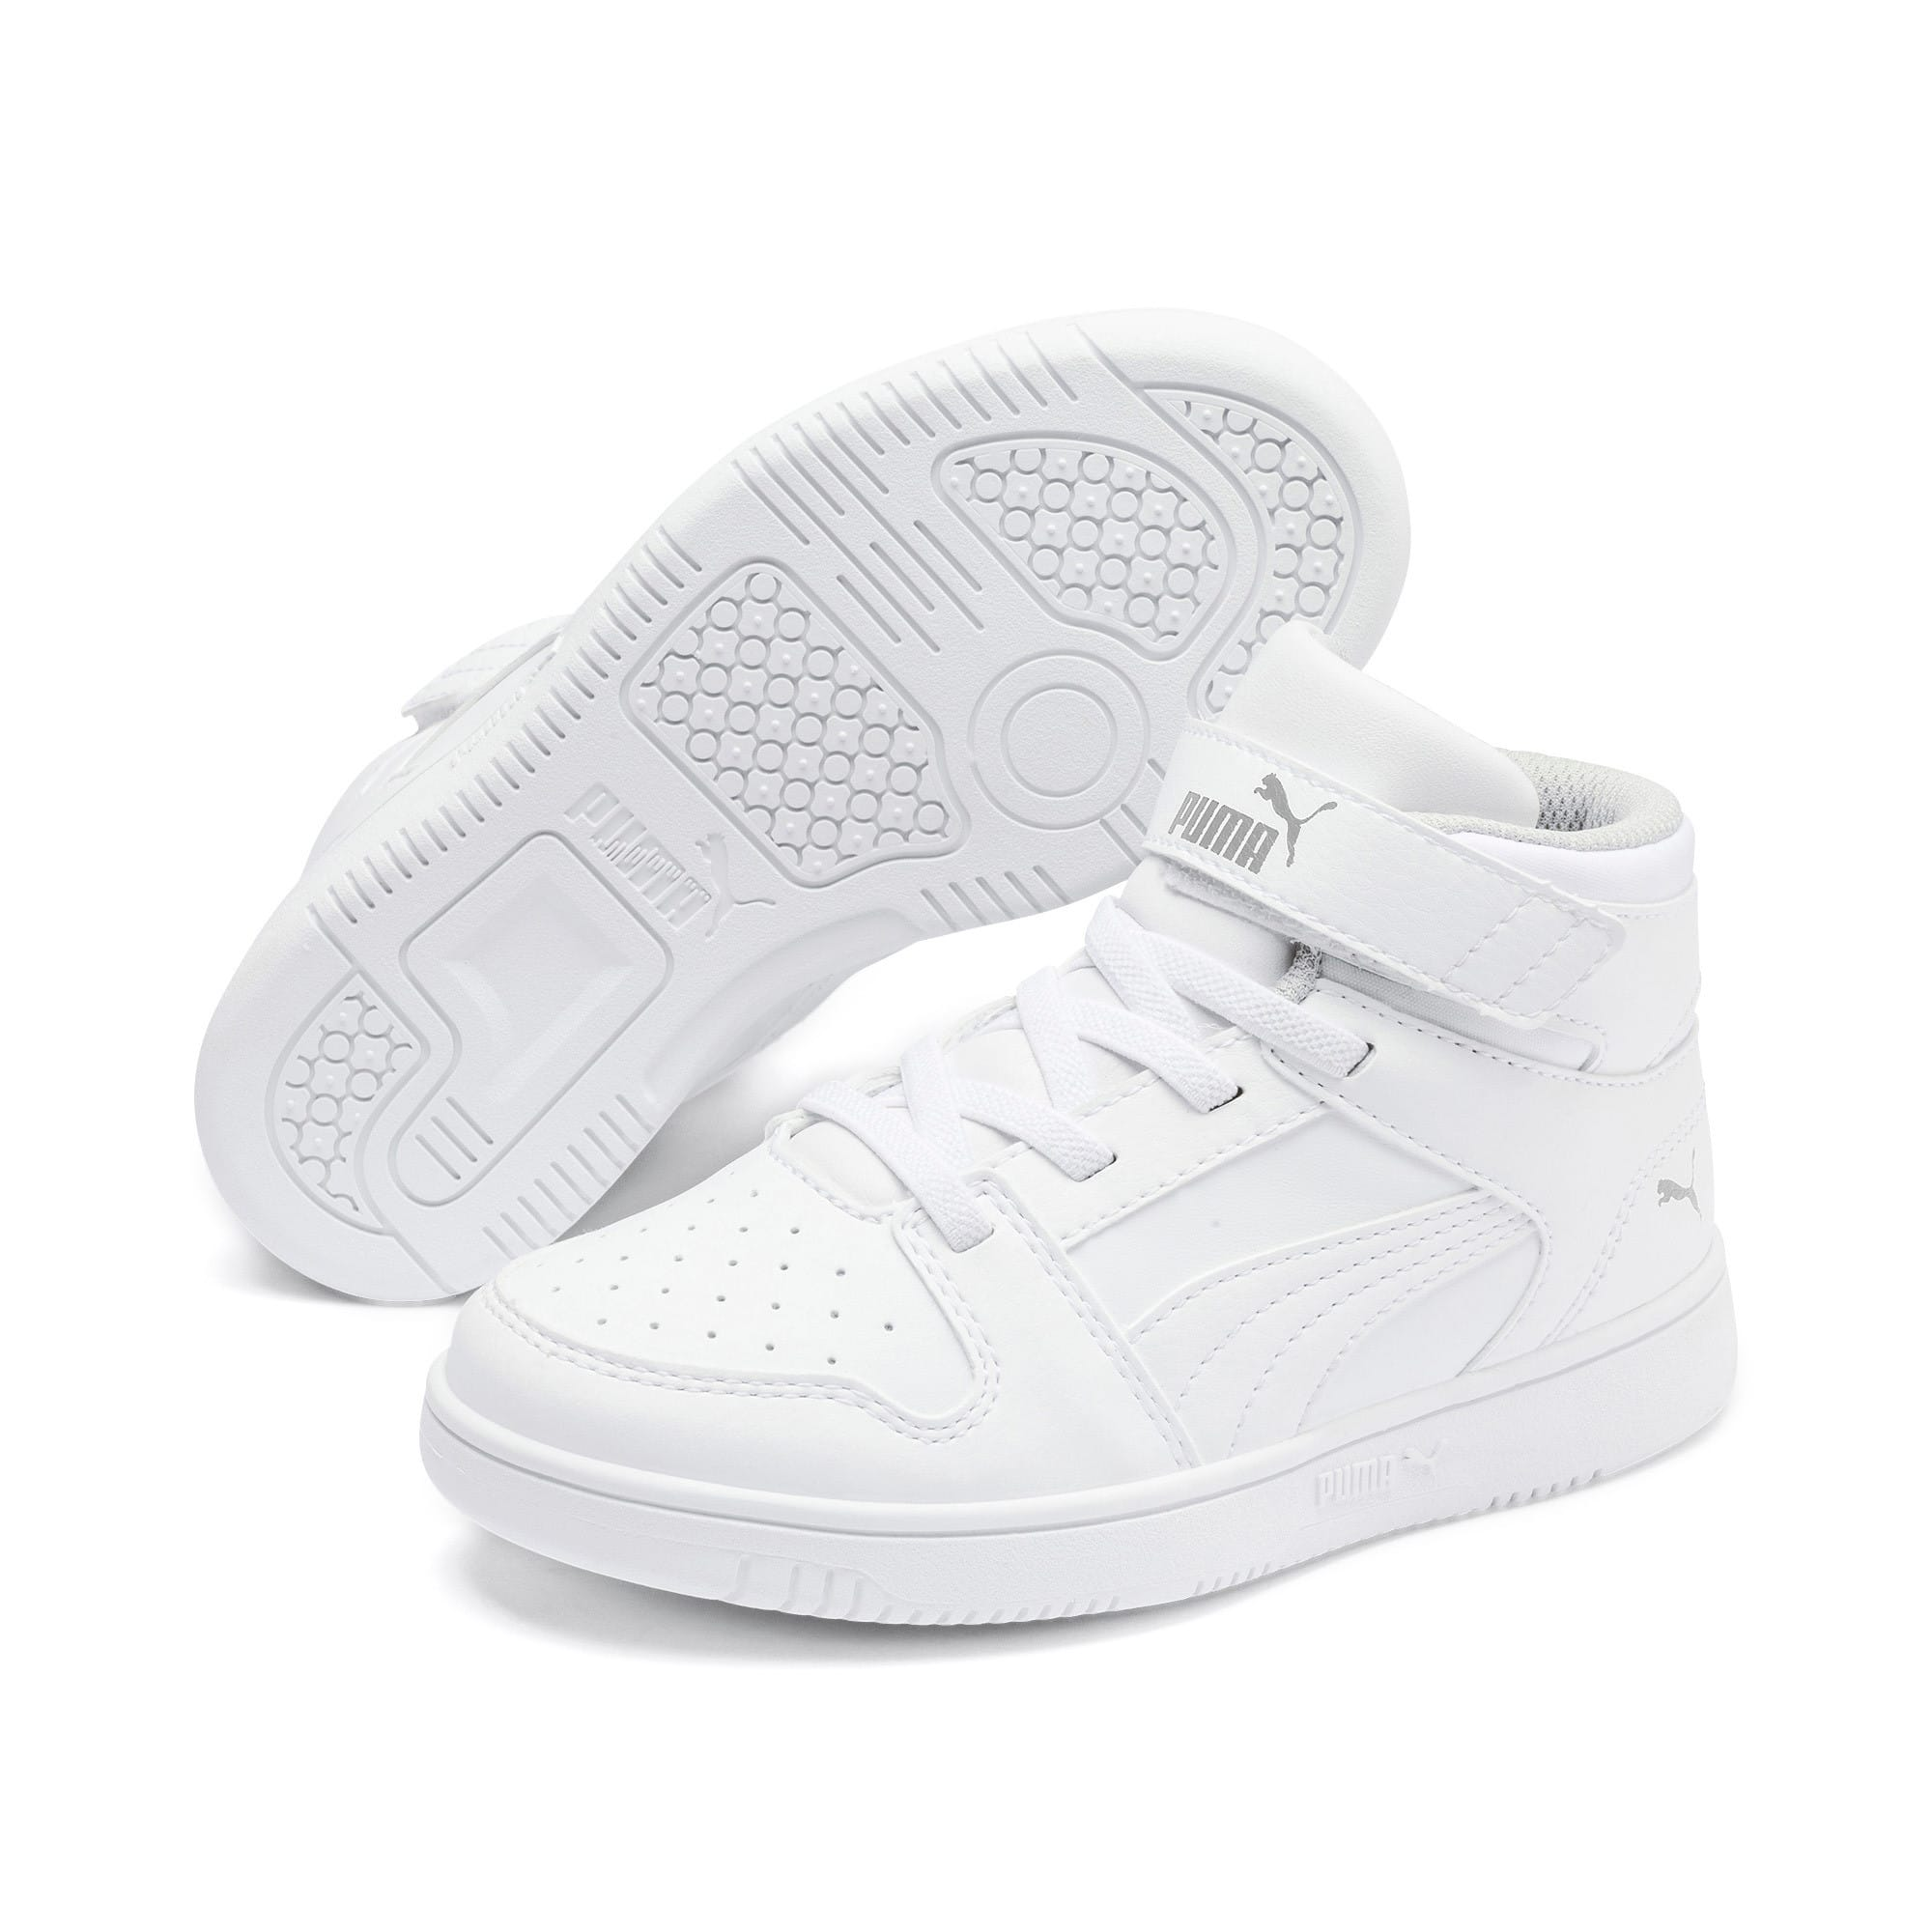 Thumbnail 2 of Rebound Lay-Up SL V Kids' Trainers, Puma White-Gray Violet, medium